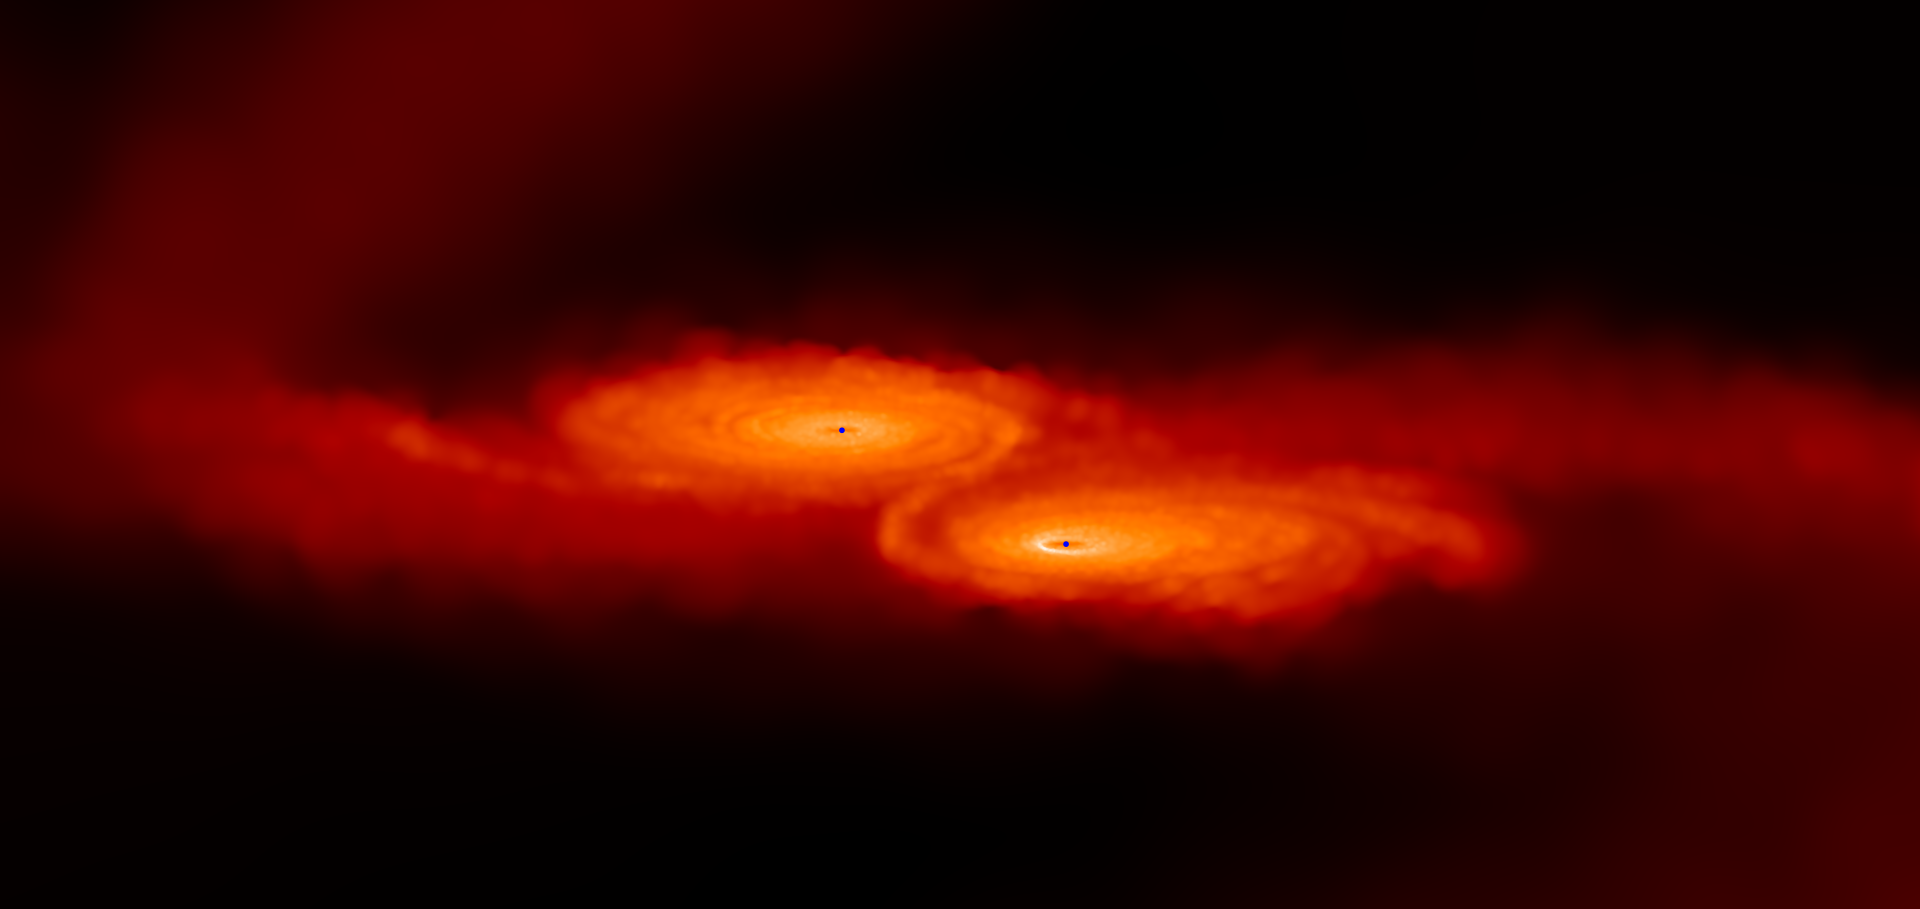 Snapshot of a simulation of two merging supermassive black holes